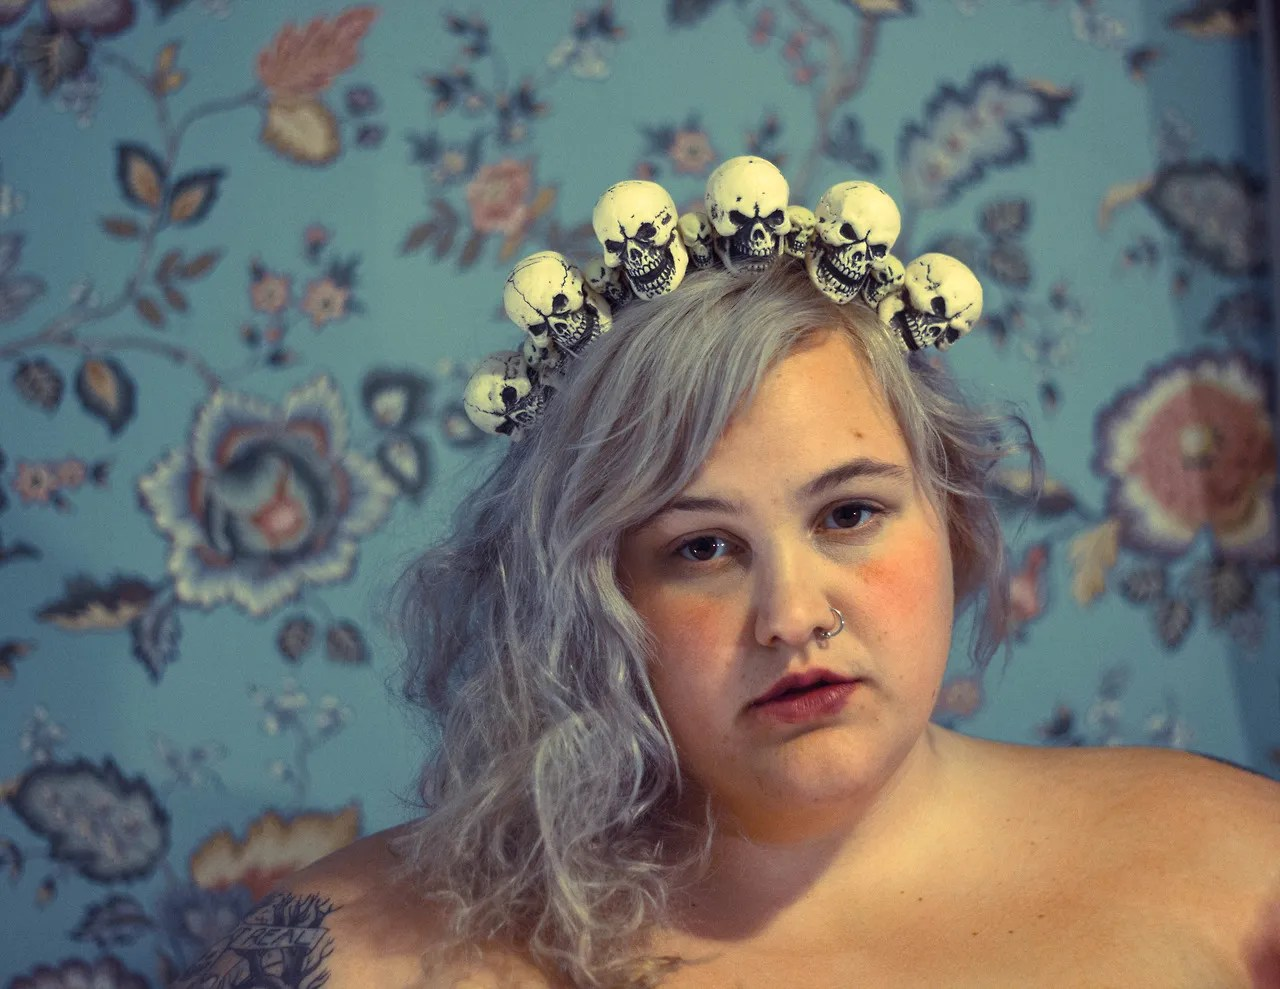 plus size woman with pastel silver hair wearing white skull crown headband